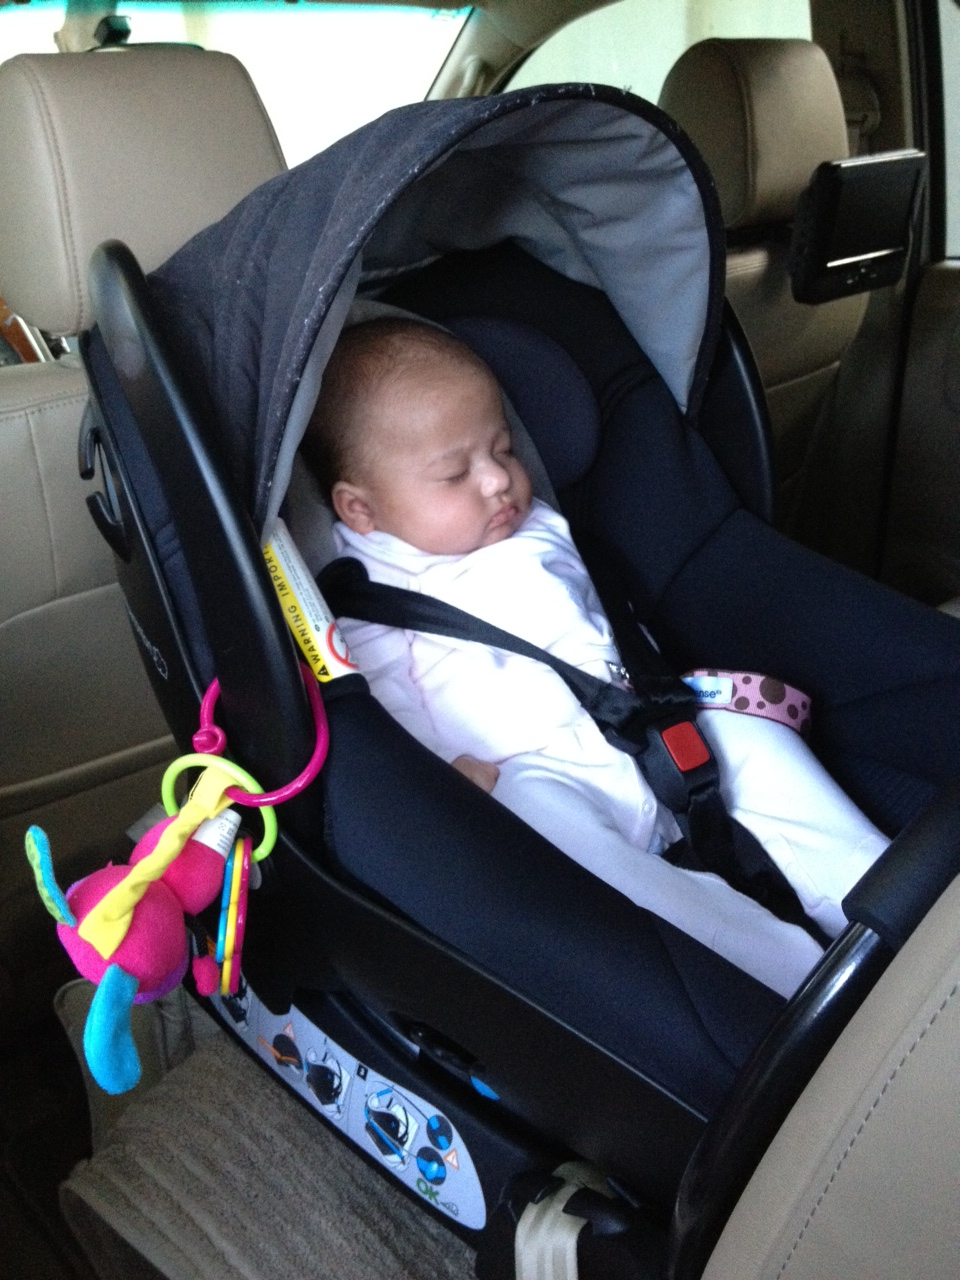 Infographic provides insight towards the importance of car seats for children in the U.S.